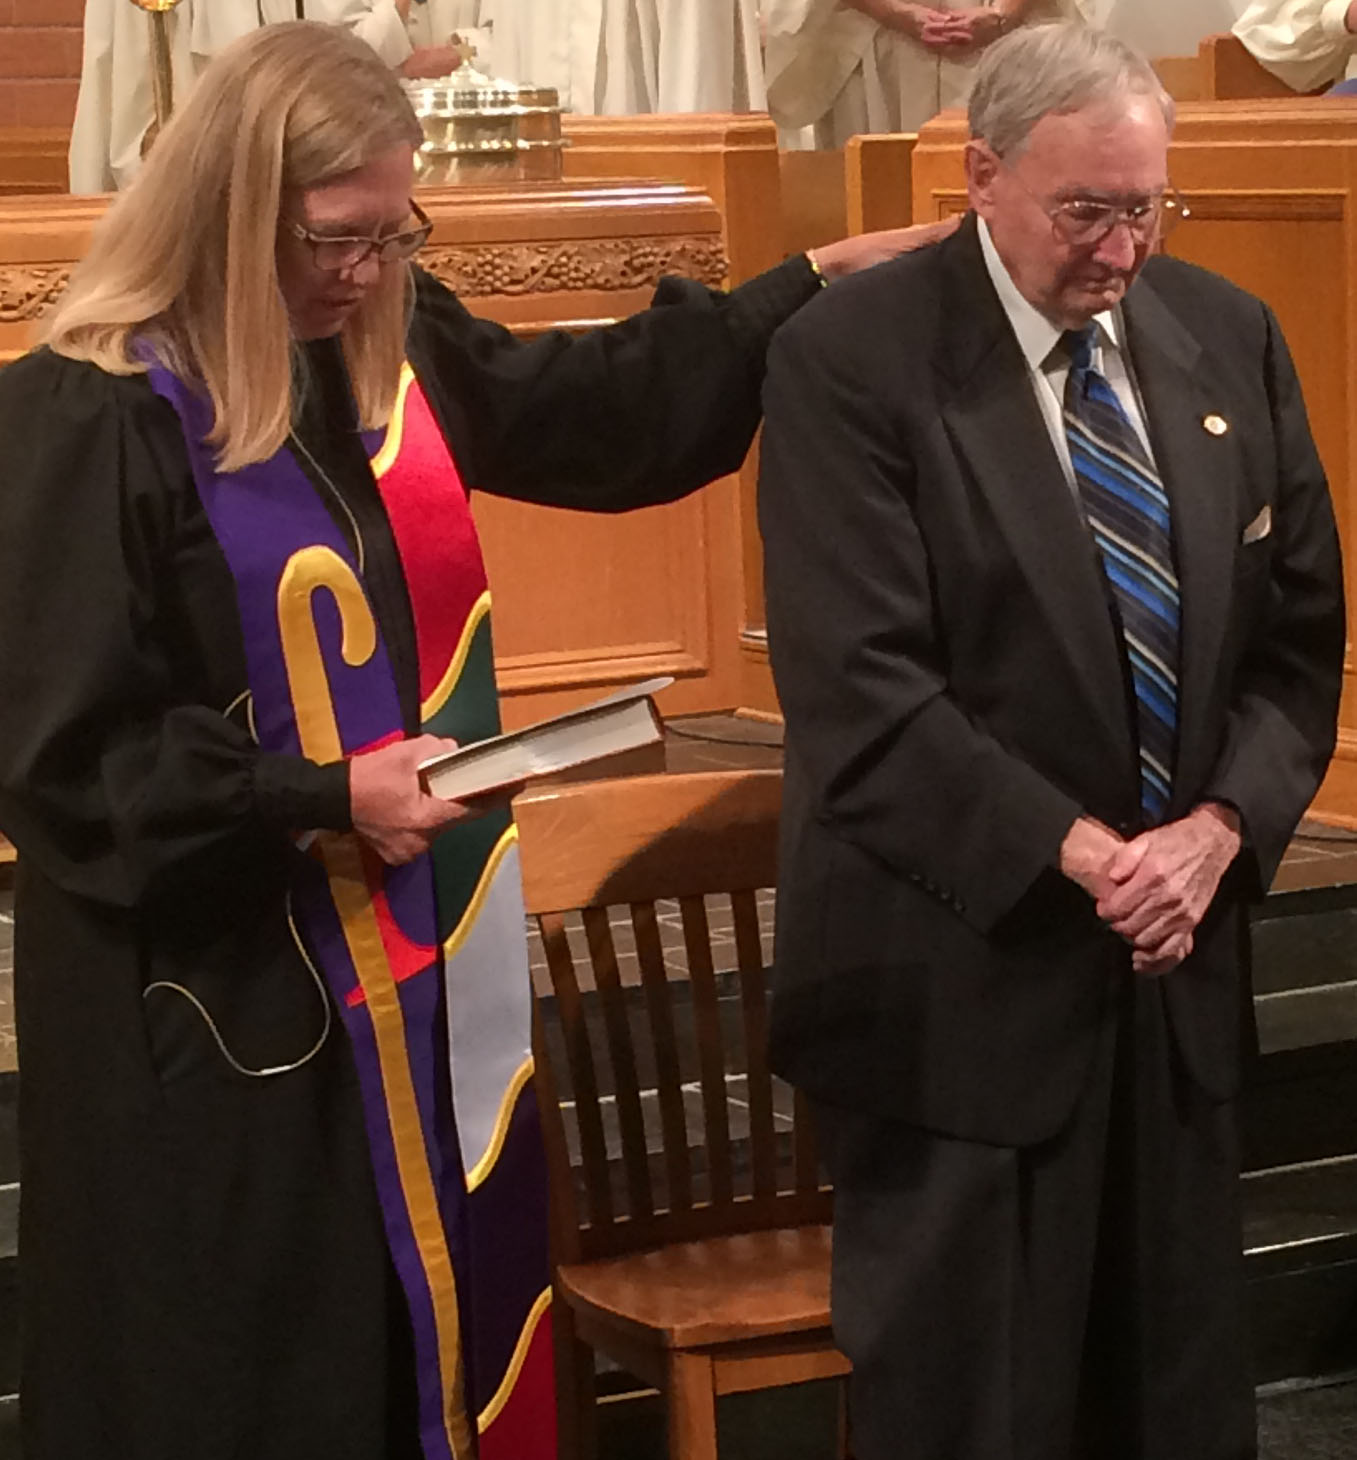 Remembering Rev. Dr. Robert (Bob) Elliott